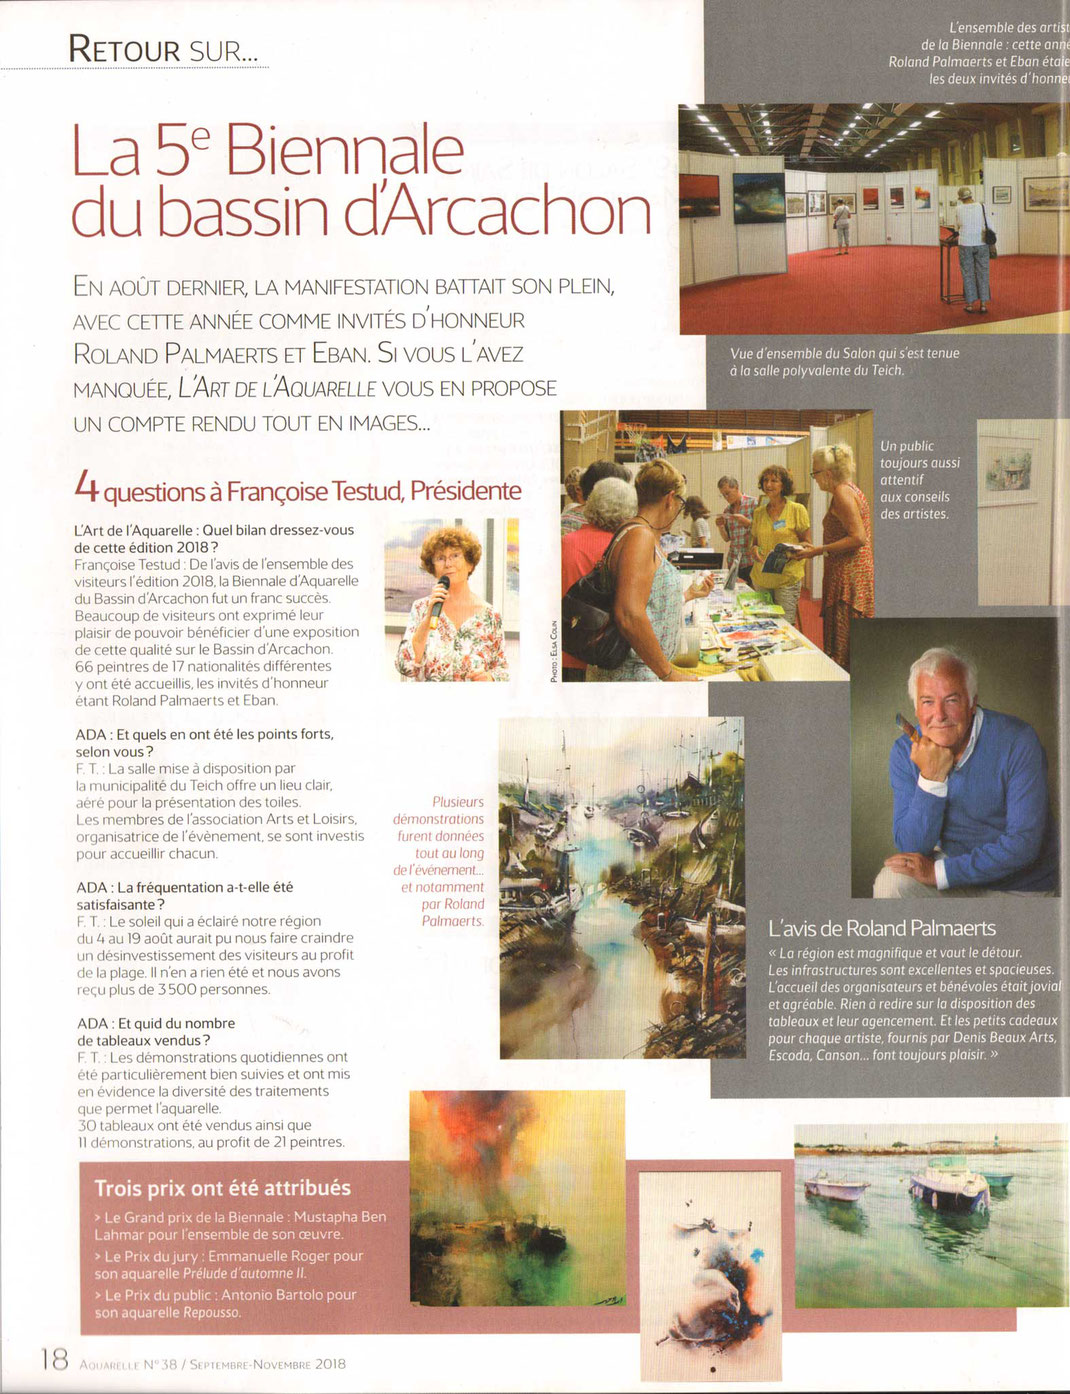 Article l'Art de l'Aquarelle no 38 Septembre / Novembre 2018 page 1